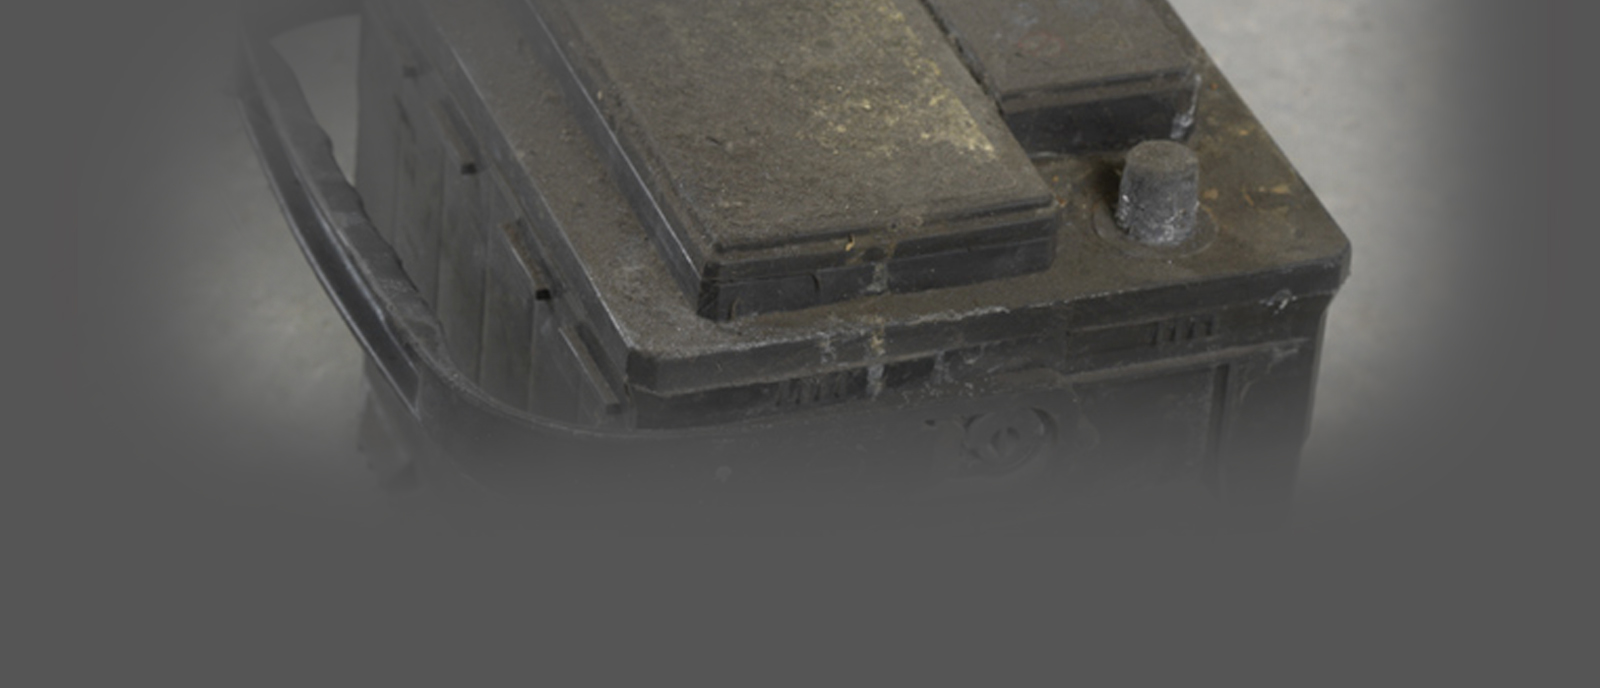 cleaning up a corroded battery dremel malaysia official website